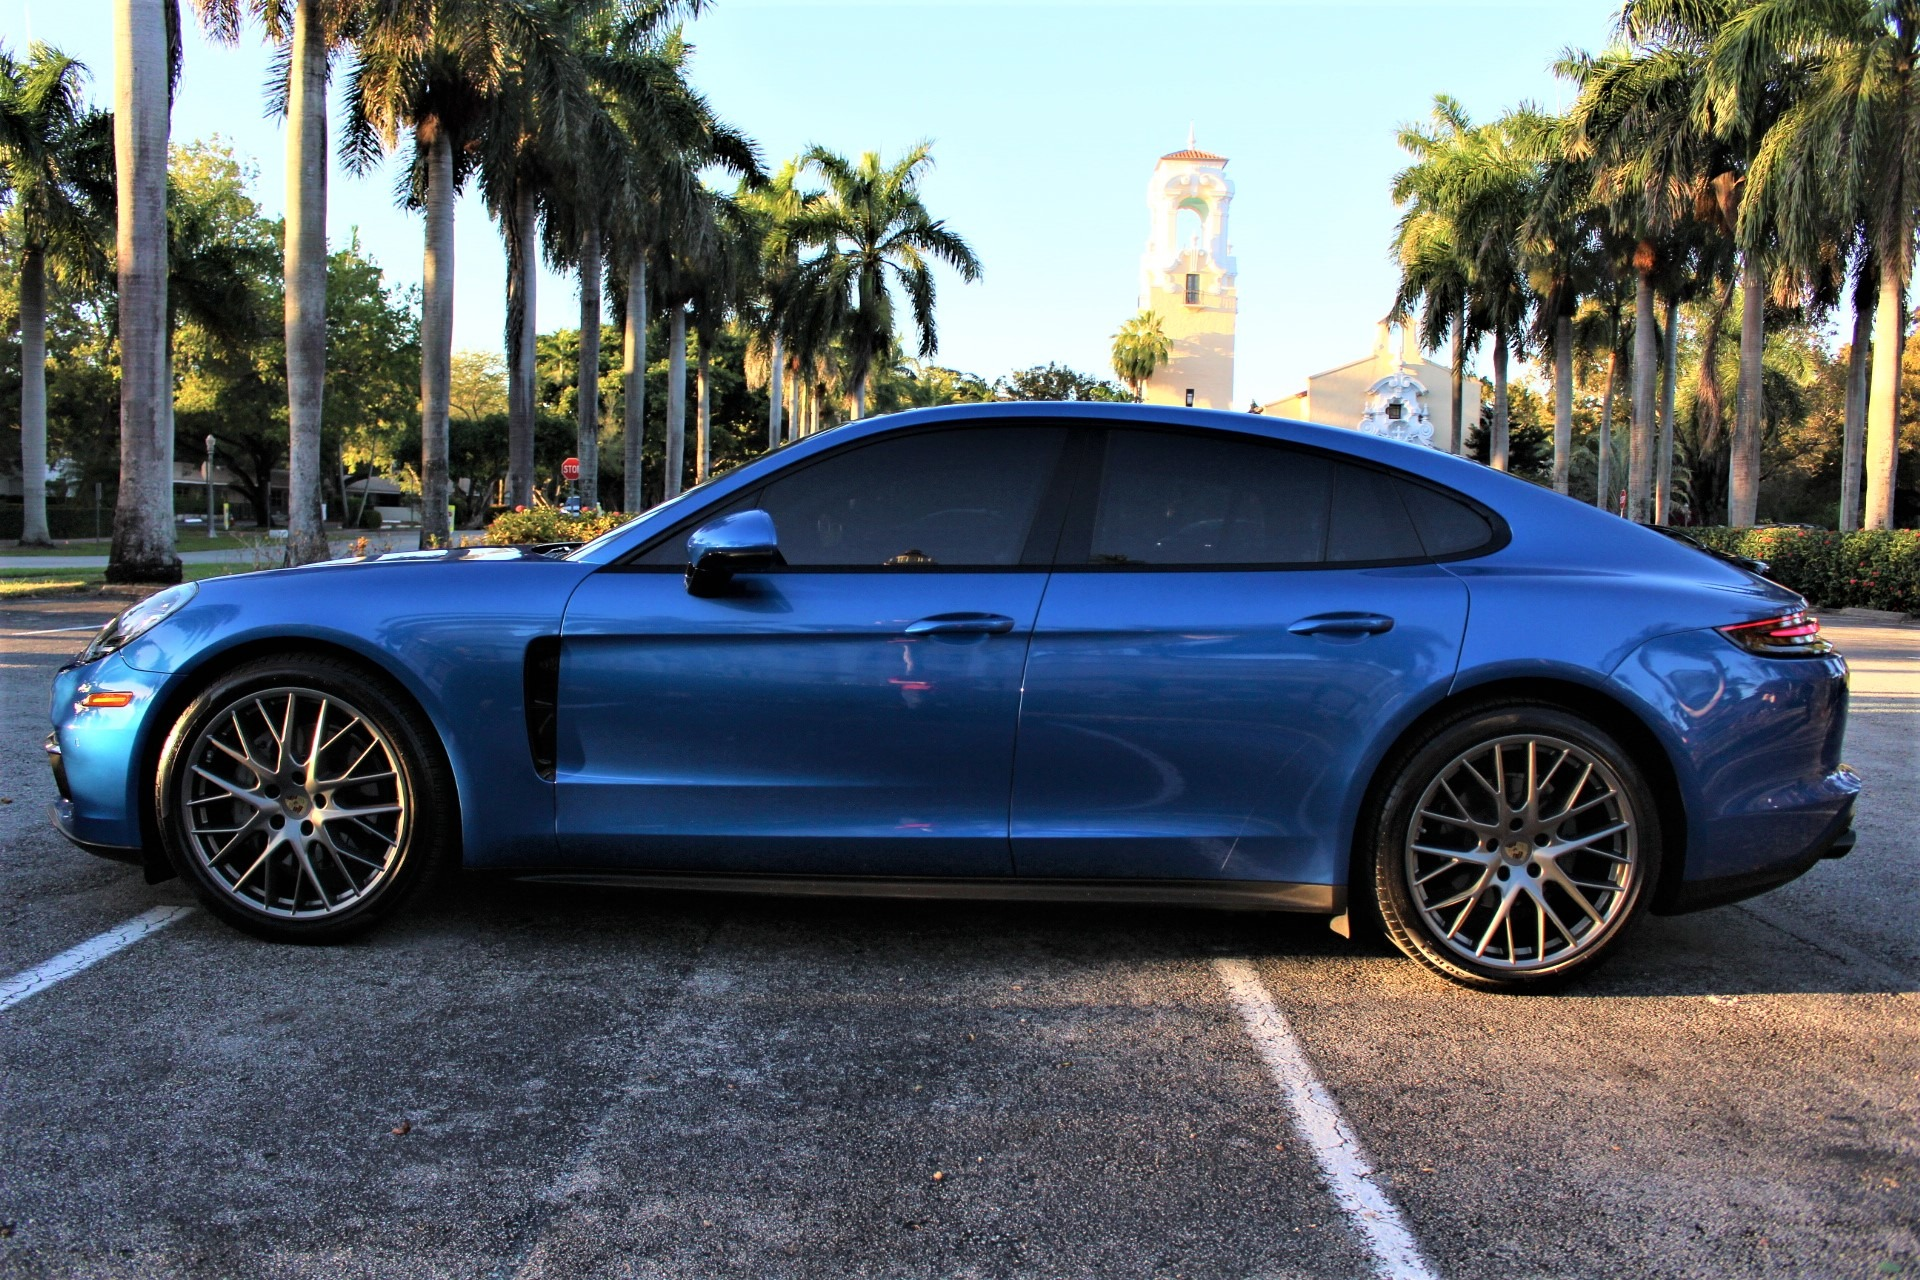 Used 2018 Porsche Panamera 4S for sale $83,850 at The Gables Sports Cars in Miami FL 33146 4